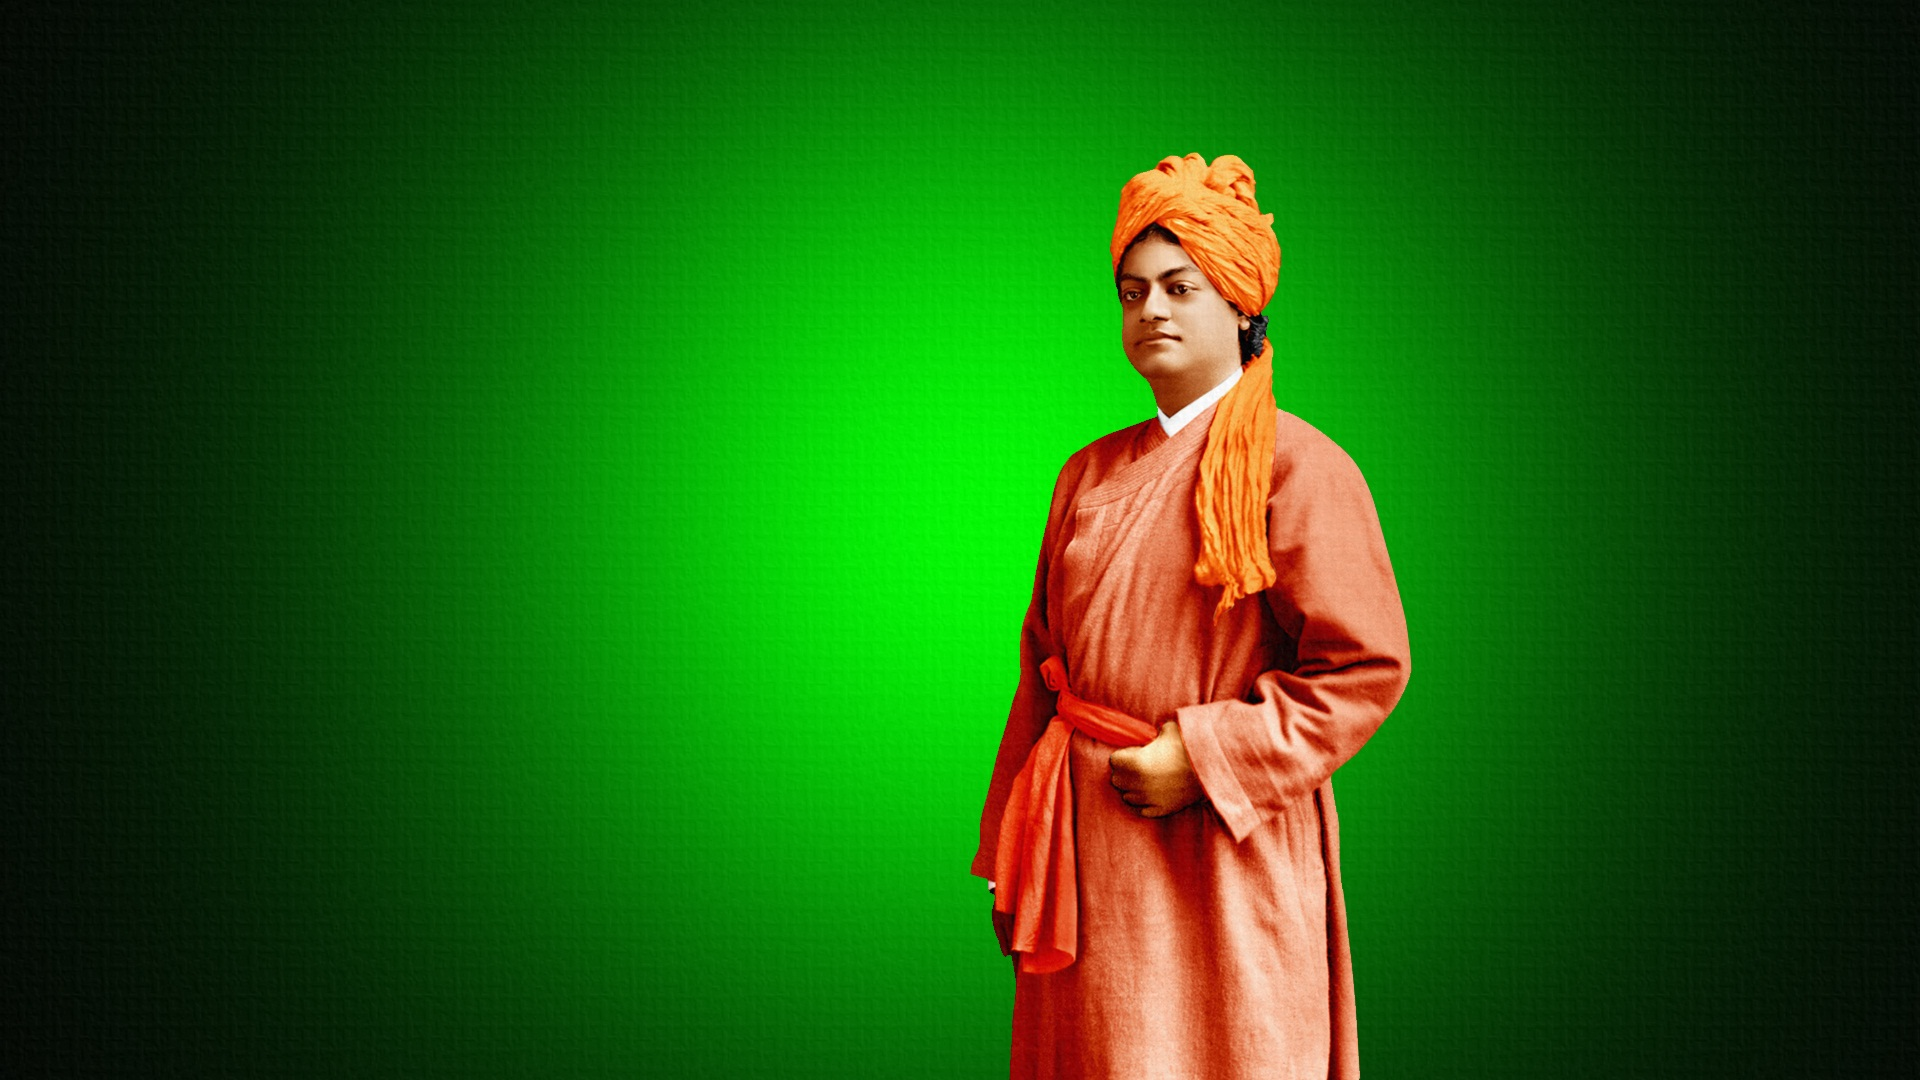 swami vivekananda images speech essay on his birthday 15 best inspirational swamy vivekananda quotes